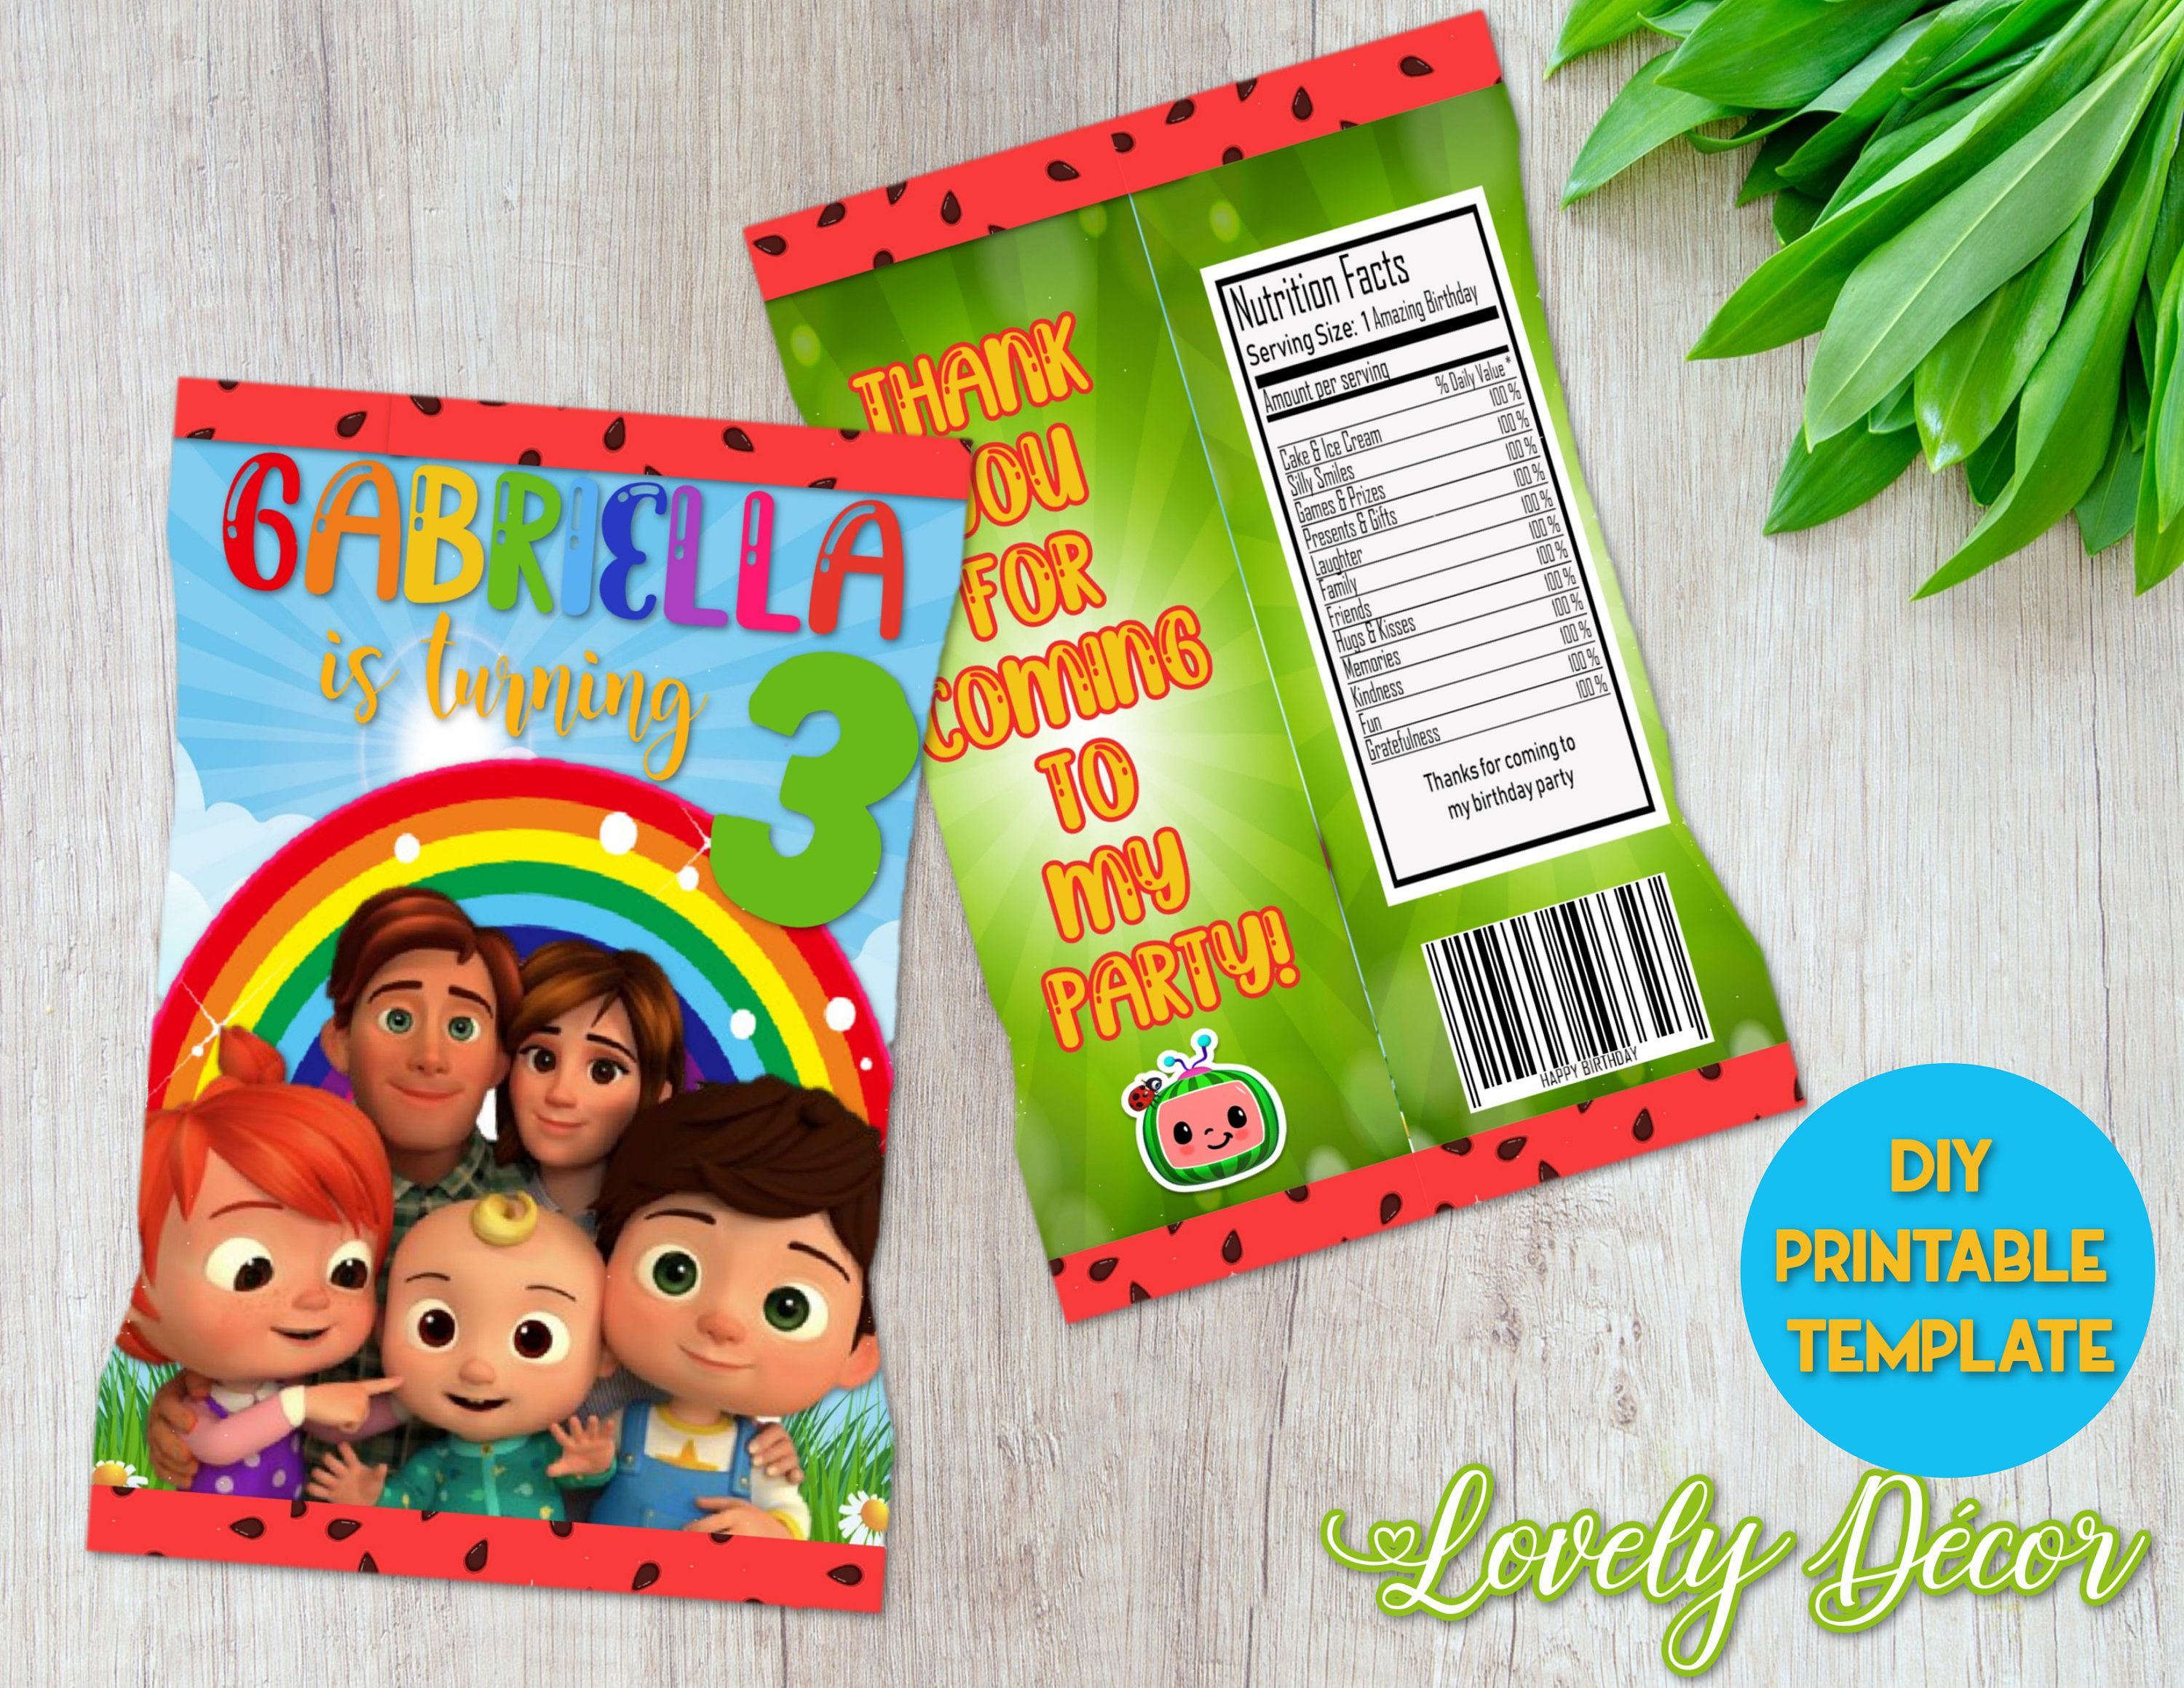 Candy Bag CocoMelon Theme Custom Chip Bags Party Bags Personalized Party Favour Chip Bags - DIGITAL FILE